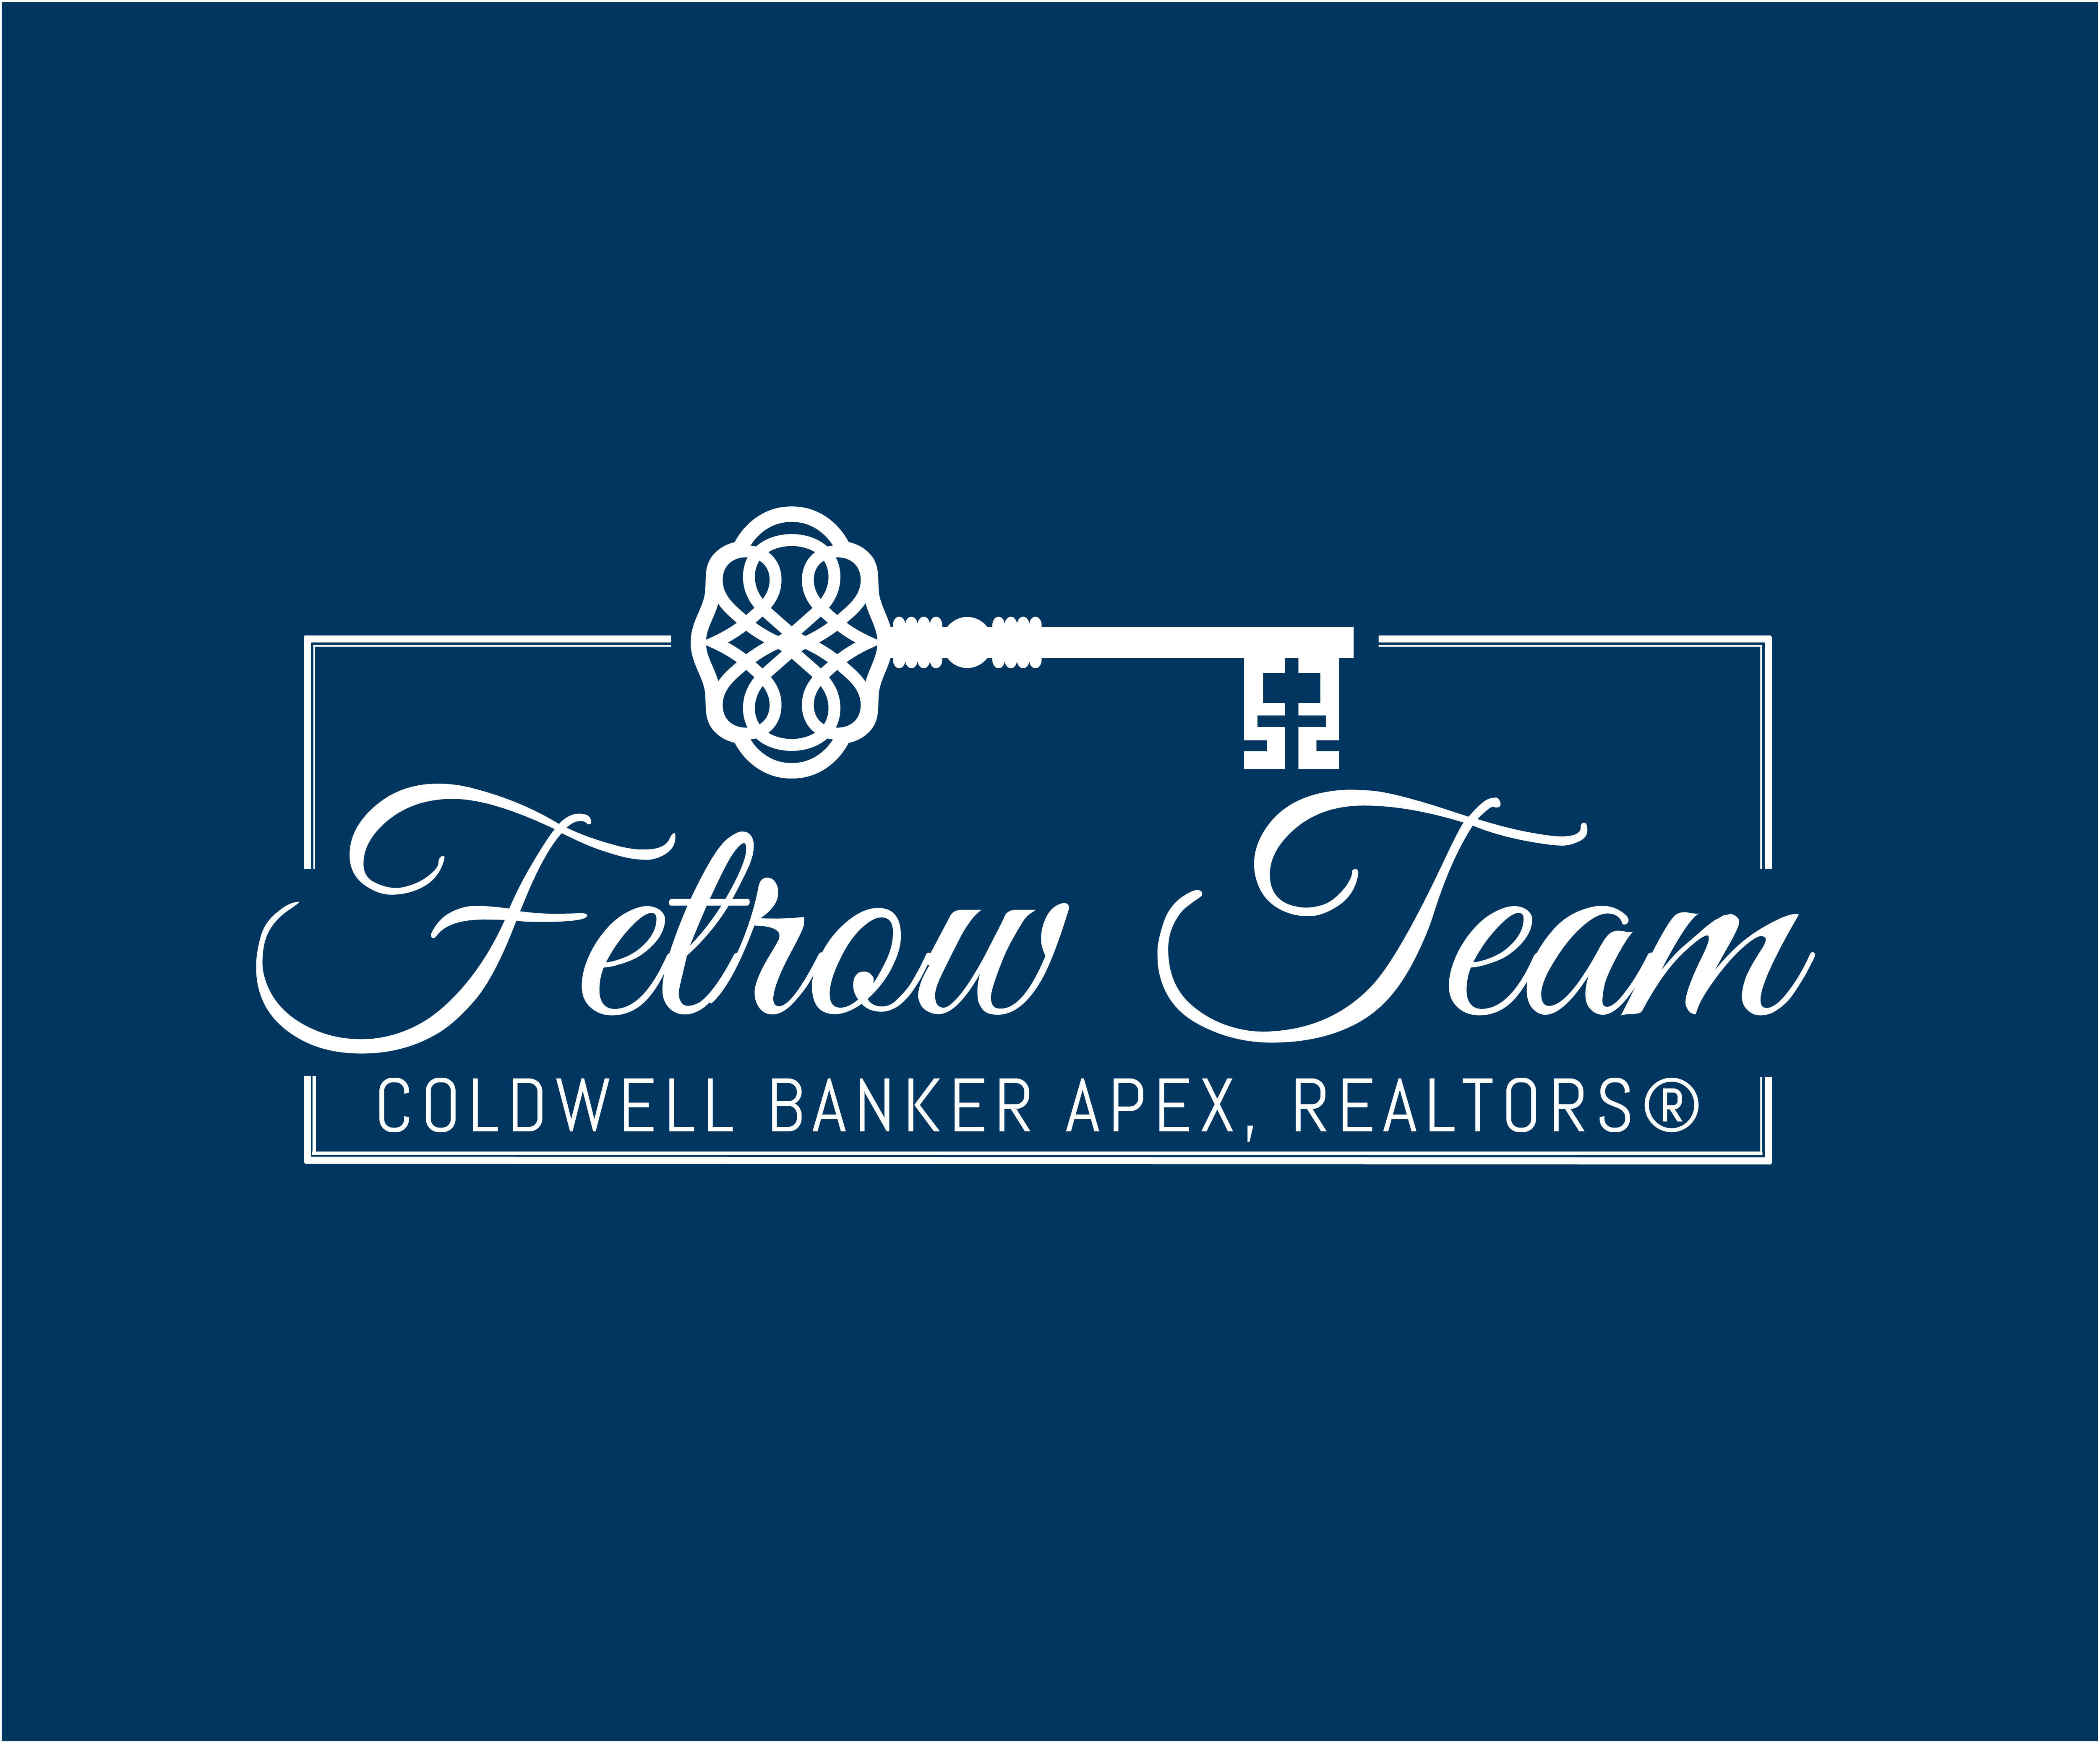 Fetrow Team at Coldwell Banker Apex logo